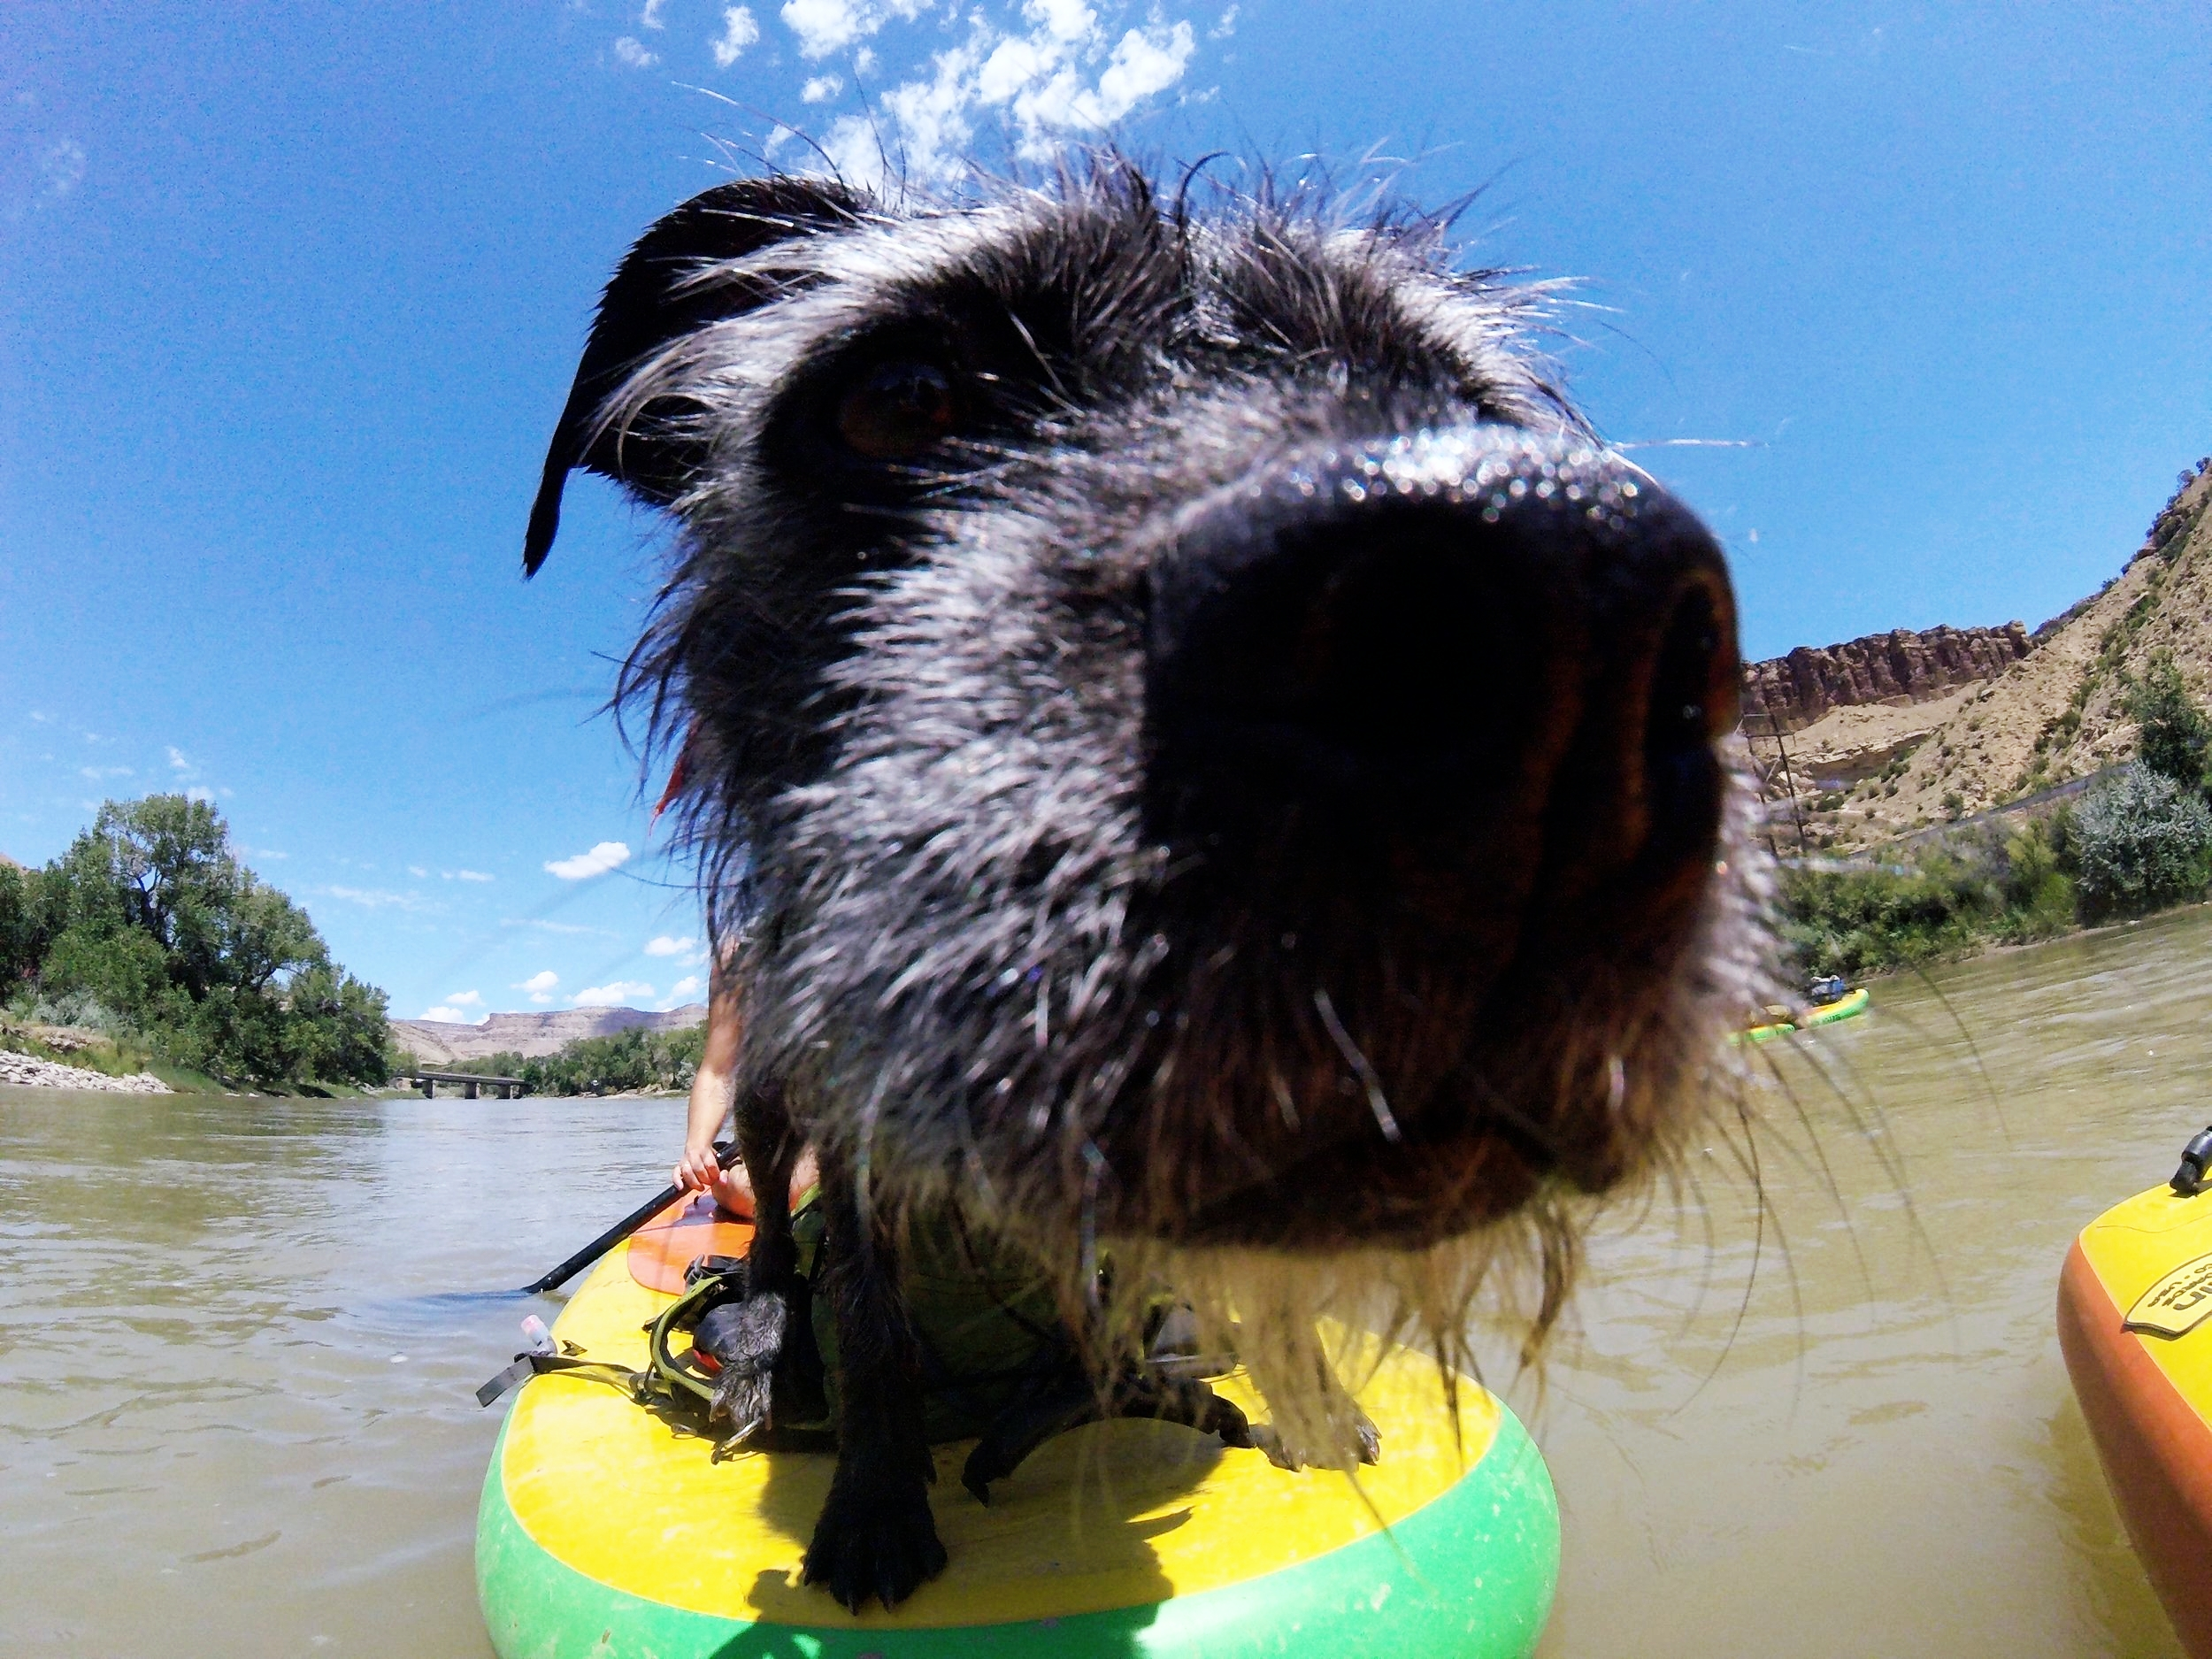 SUP dog on the Colorado River in Grad Junction, Colorado.